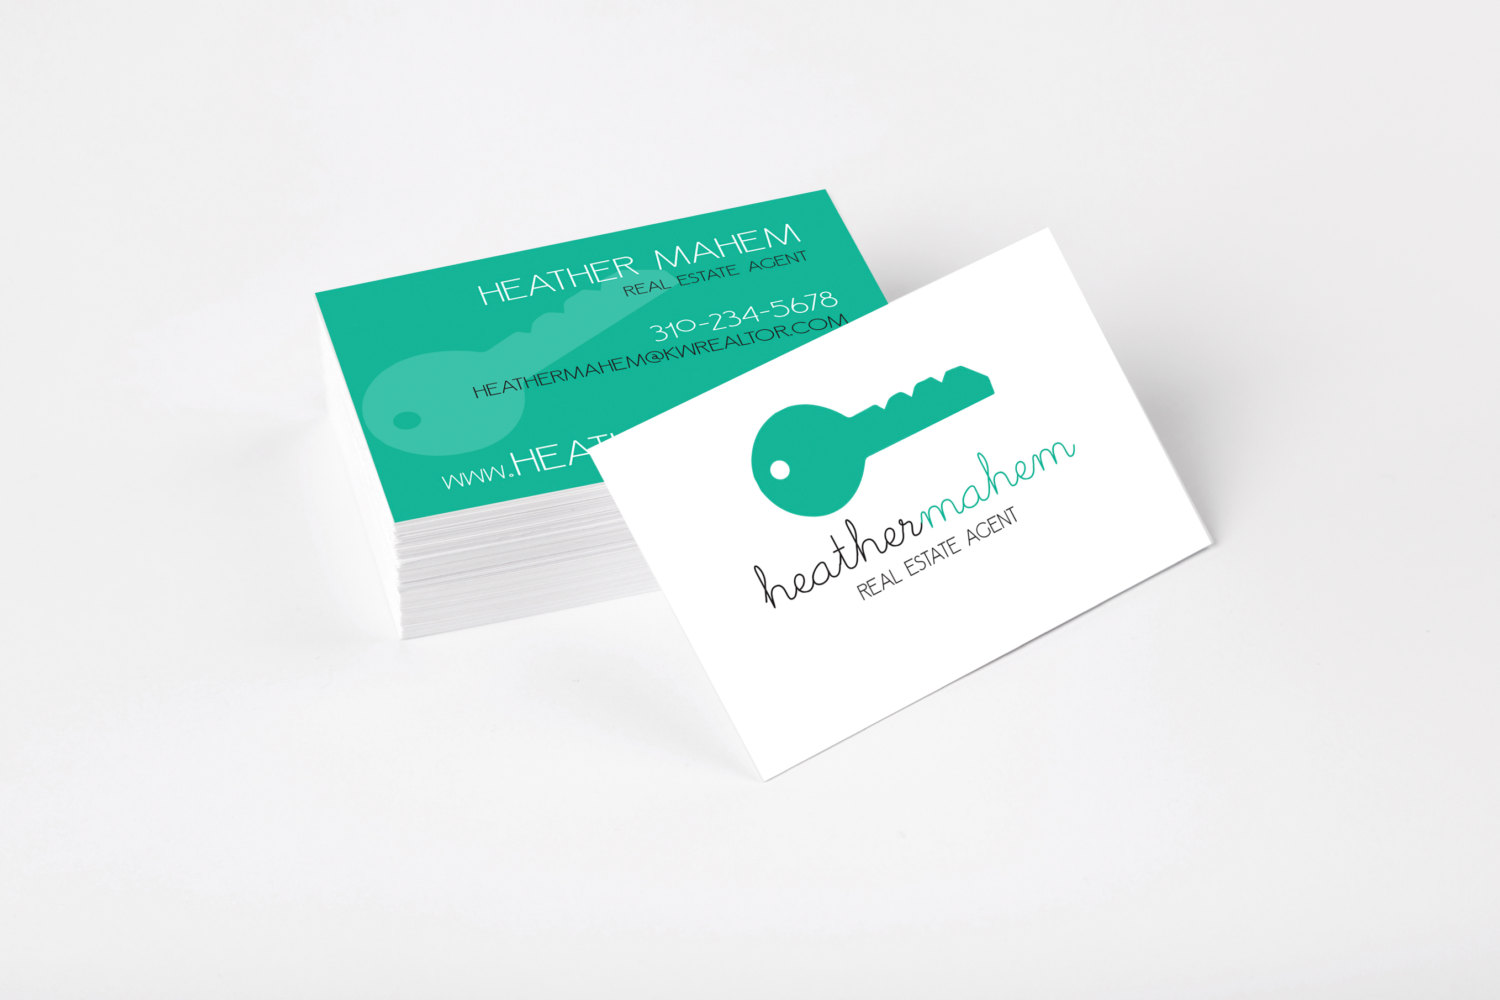 Glossy business cards business card tips glossy business cards reheart Image collections